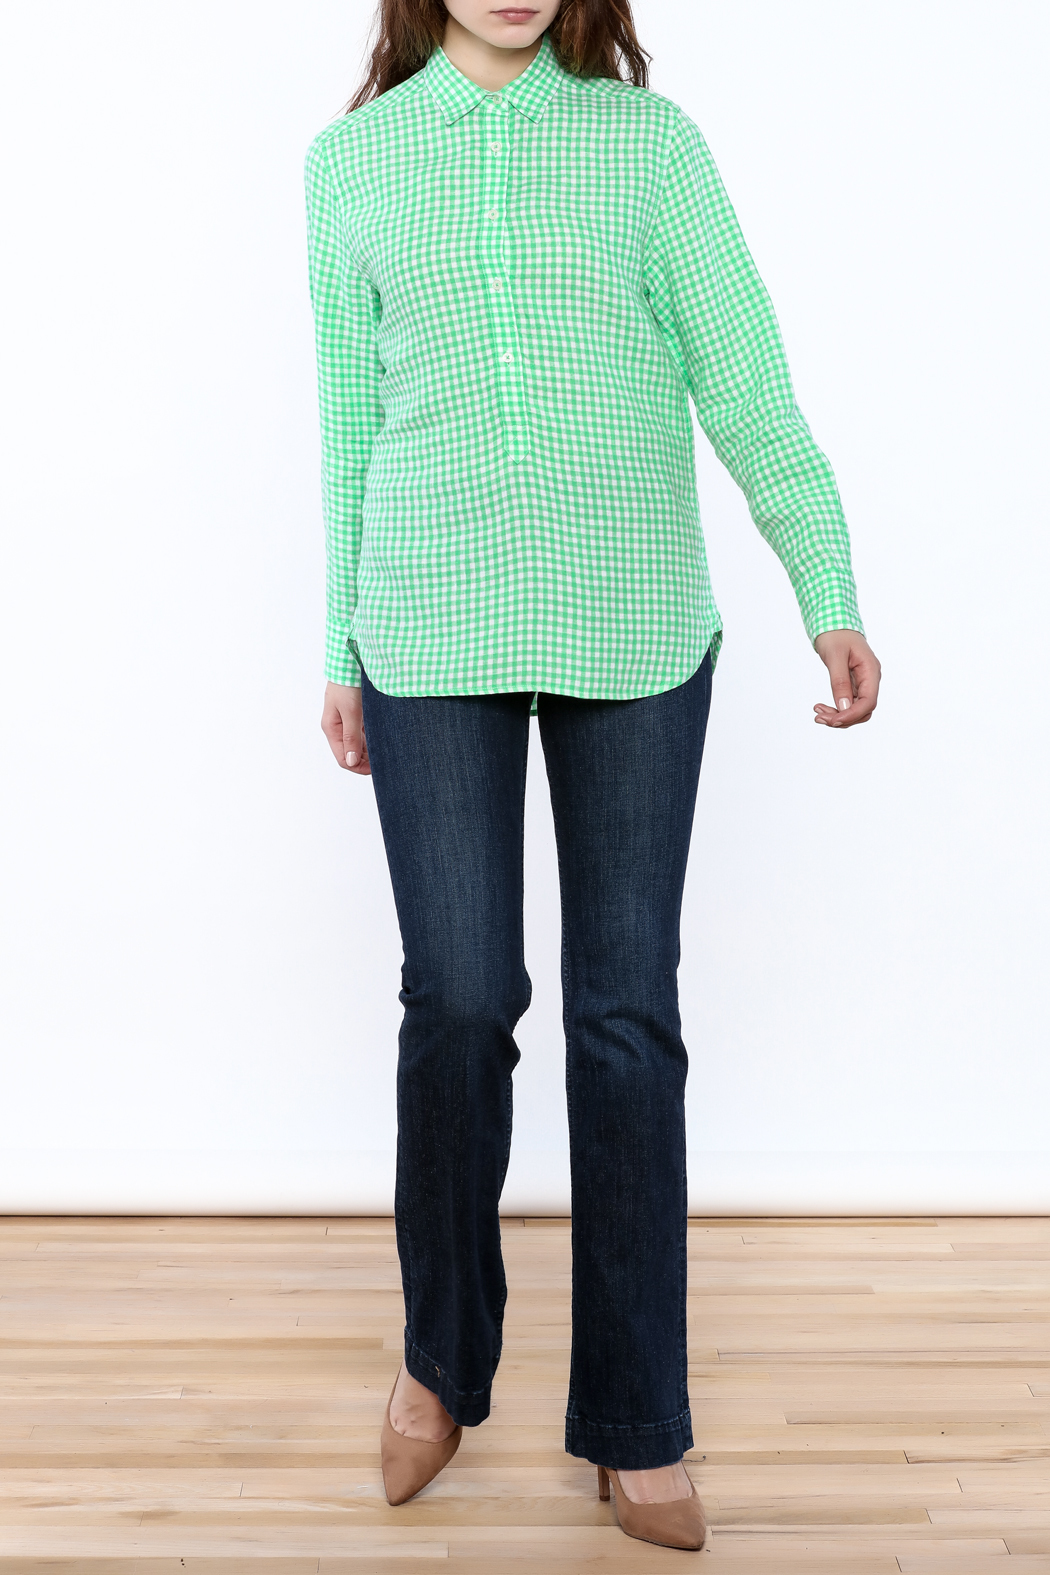 Southern Tide Gingham Button-Down Top - Front Full Image